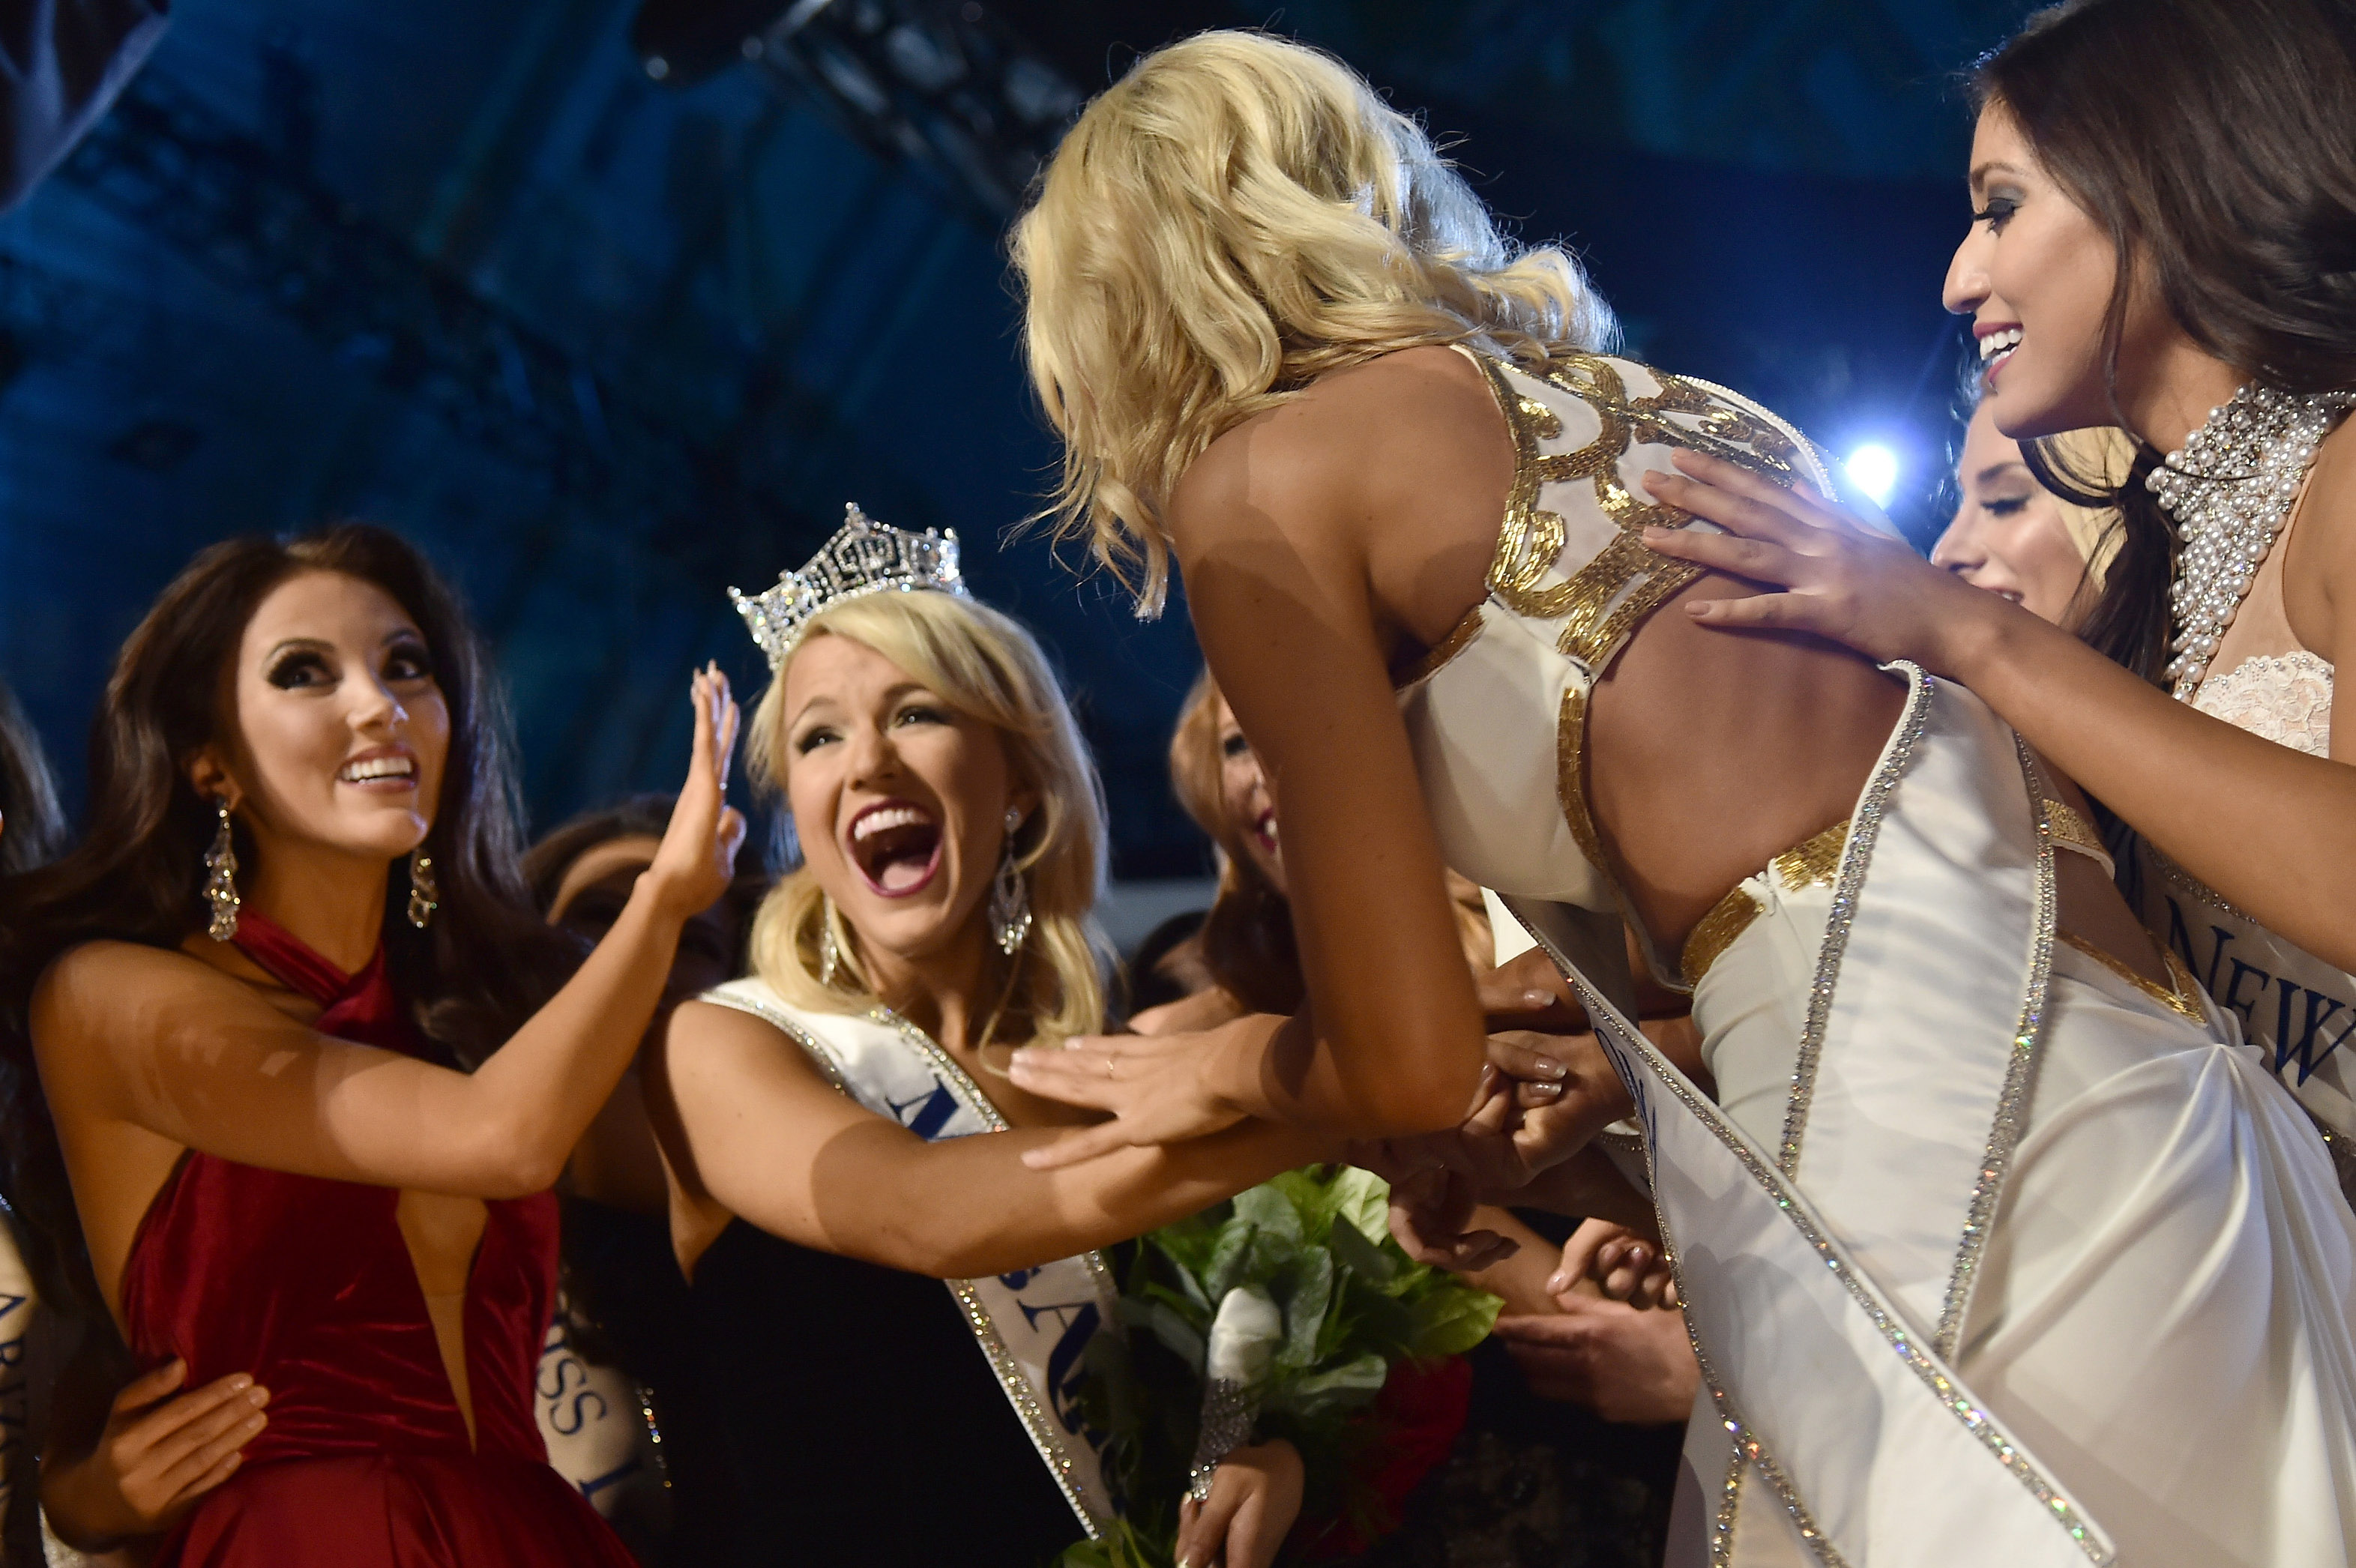 ATLANTIC CITY, NJ - SEPTEMBER 11: Miss America 2017 Savvy Shields (C) and Miss America 2017 contestants appear onstage during the 2017 Miss America Competition at Boardwalk Hall Arena on September 11, 2016 in Atlantic City, New Jersey. (Photo by Michael Loccisano/Getty Images for dcp)